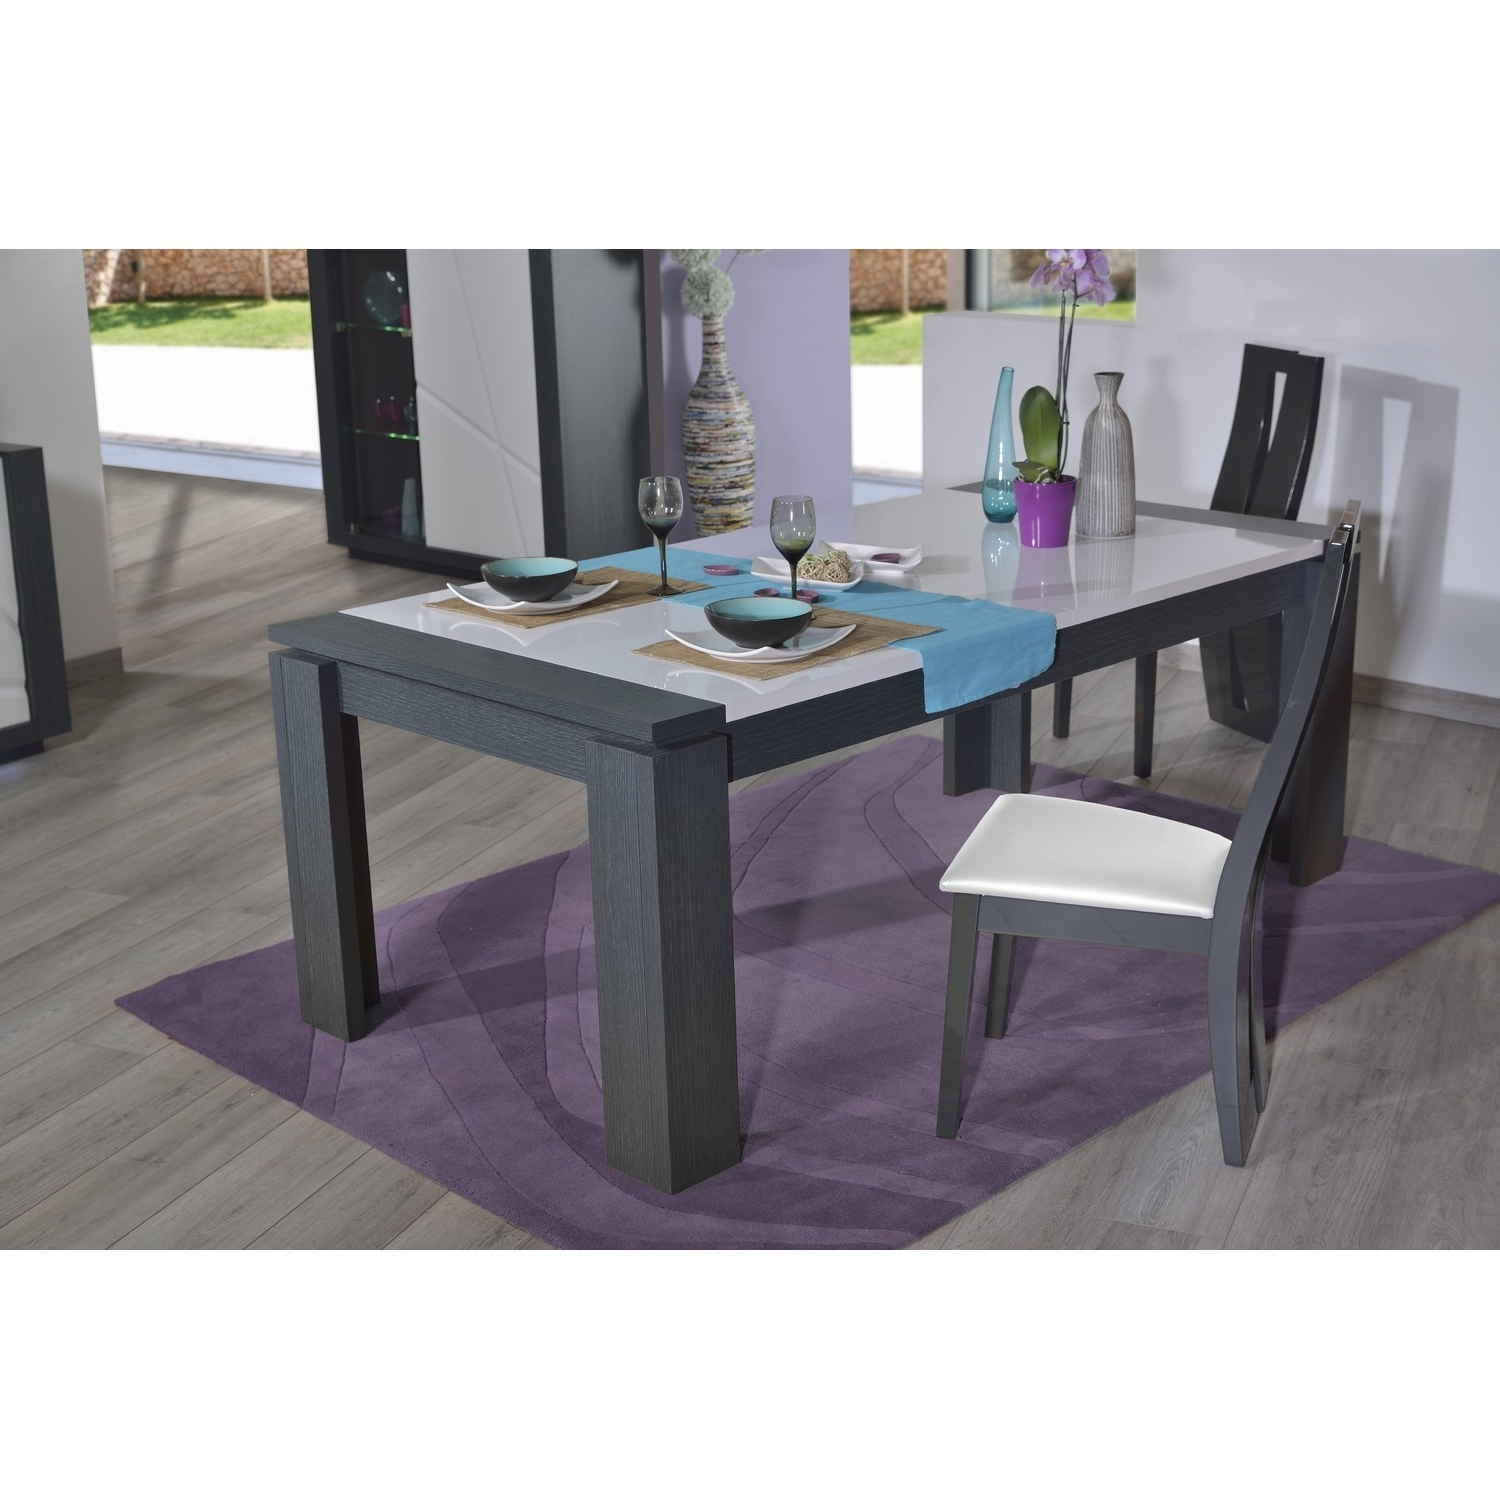 Fashionable Dark Wood Extending Dining Tables With Quartz Extendable Dining Table With Dark Wood Body – Dining Tables (View 2 of 25)